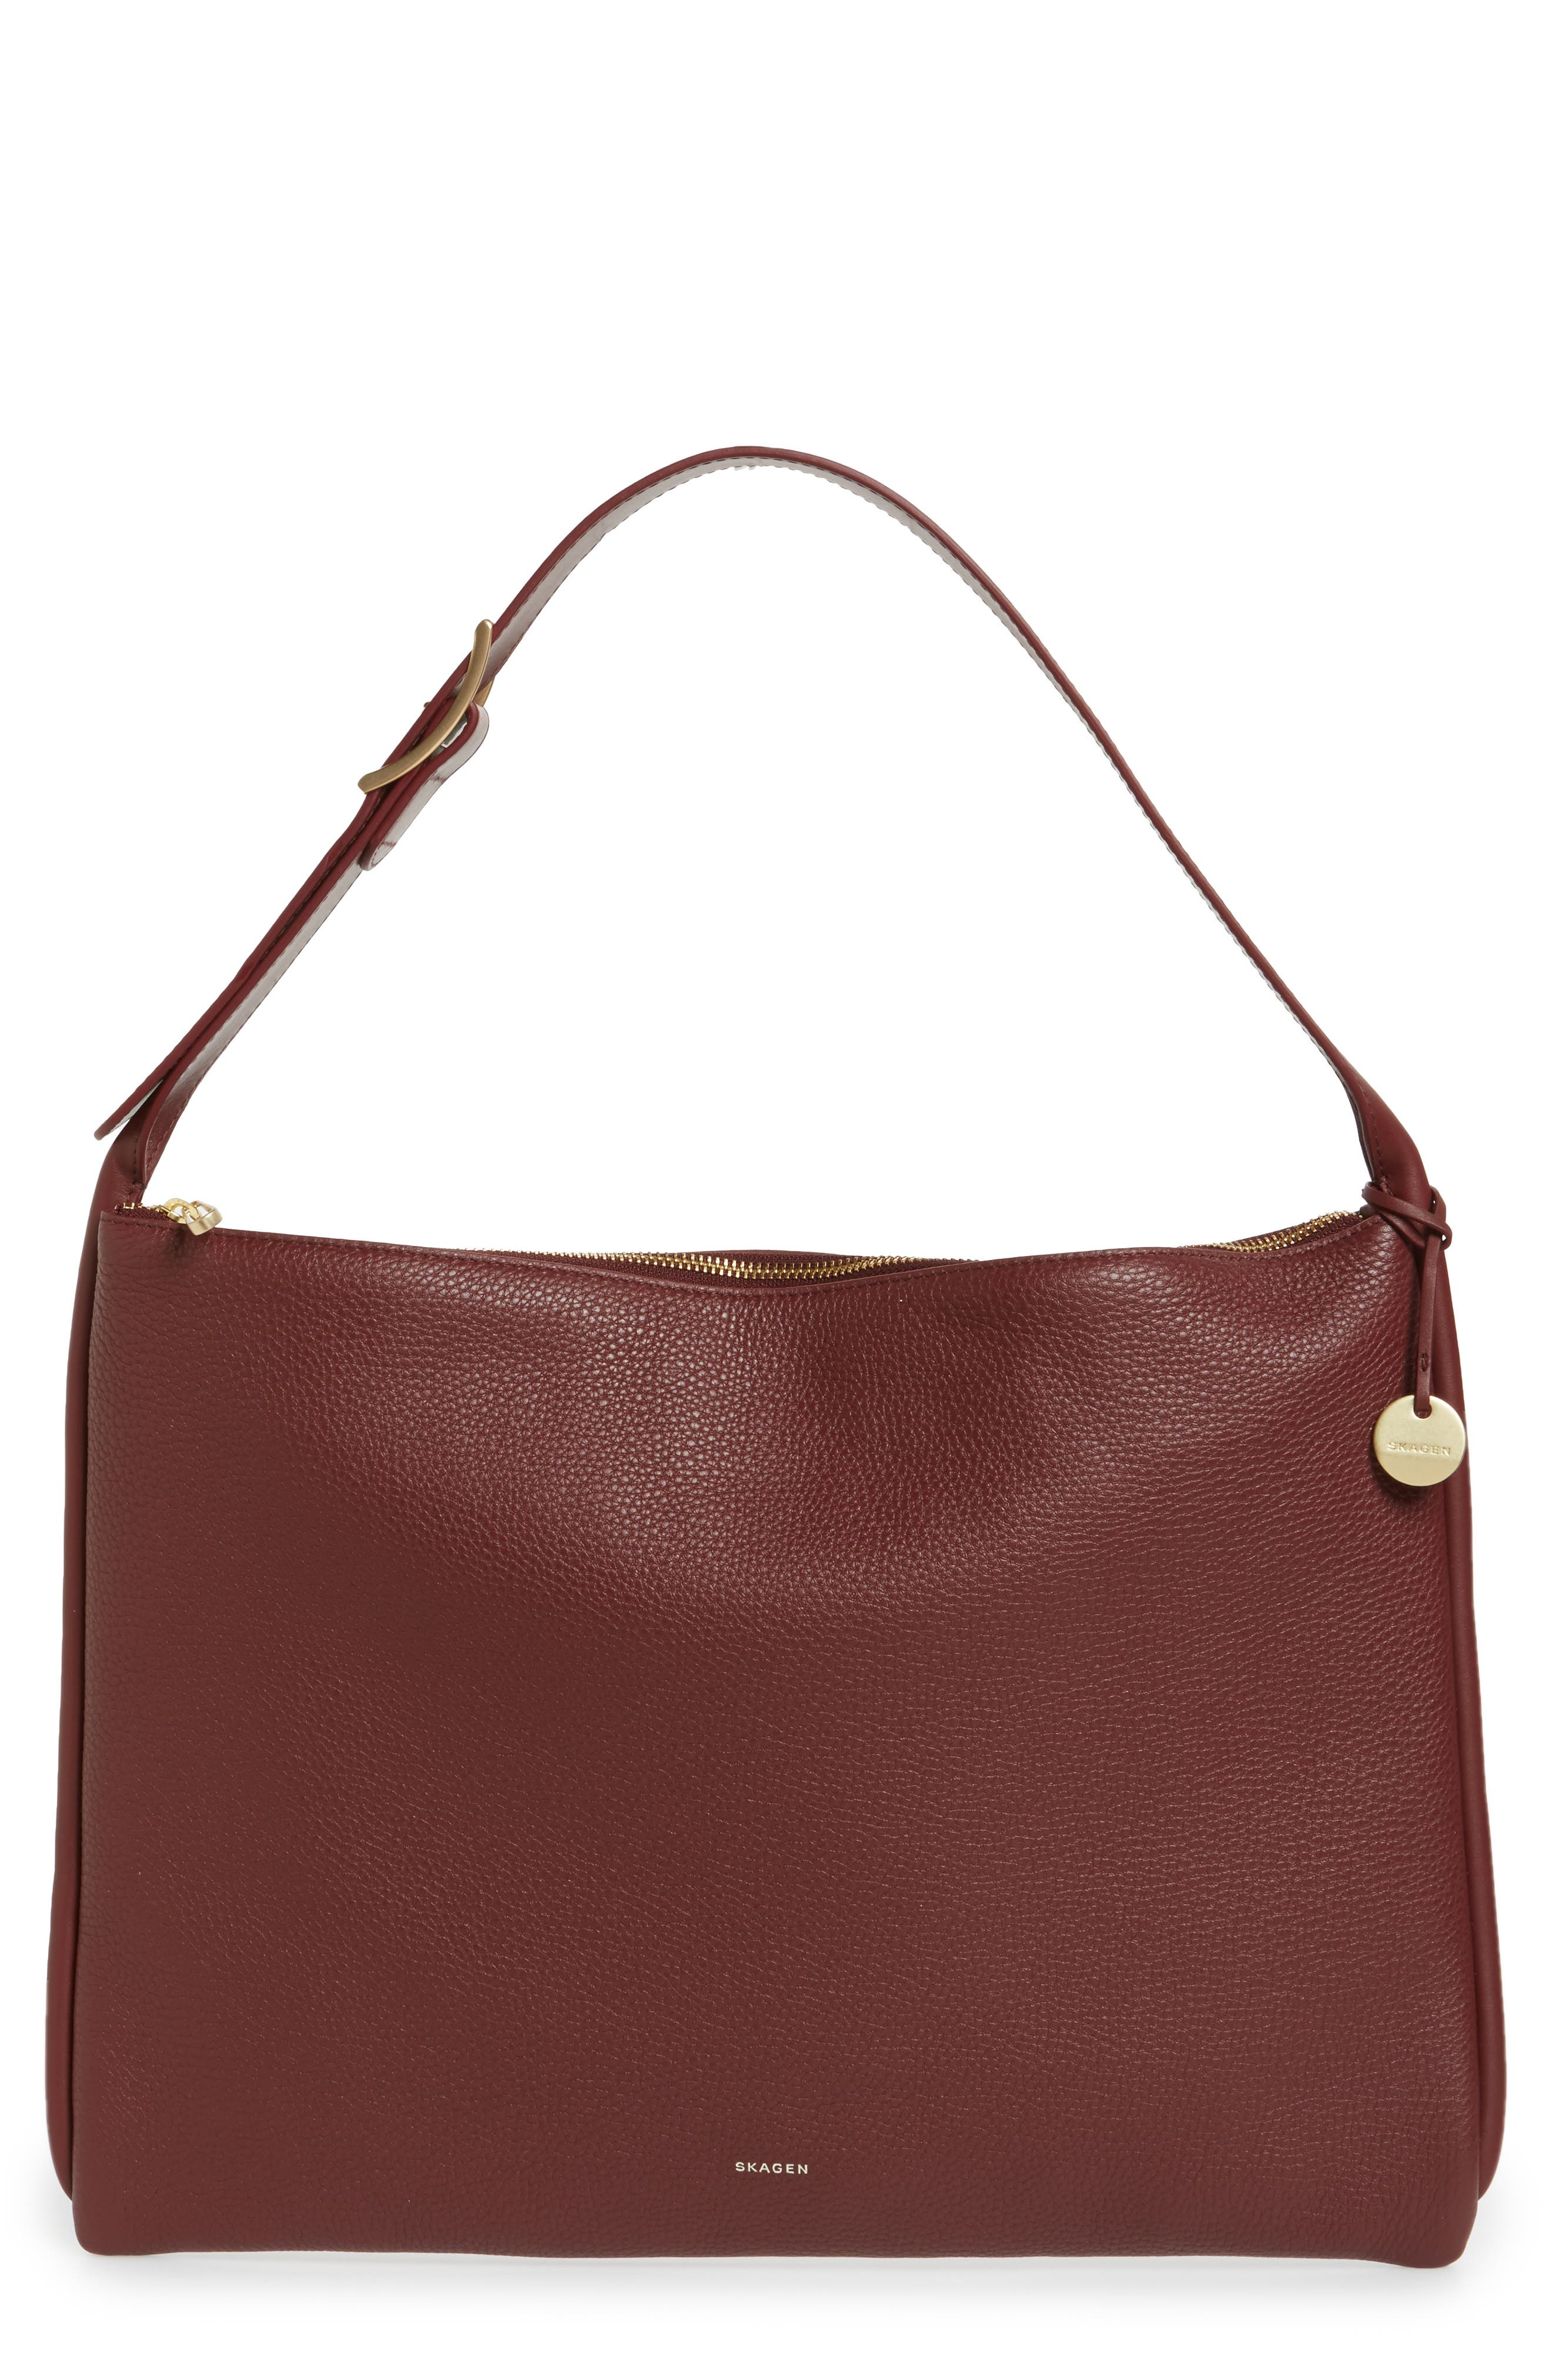 Skagen Anesa Leather Shoulder Bag